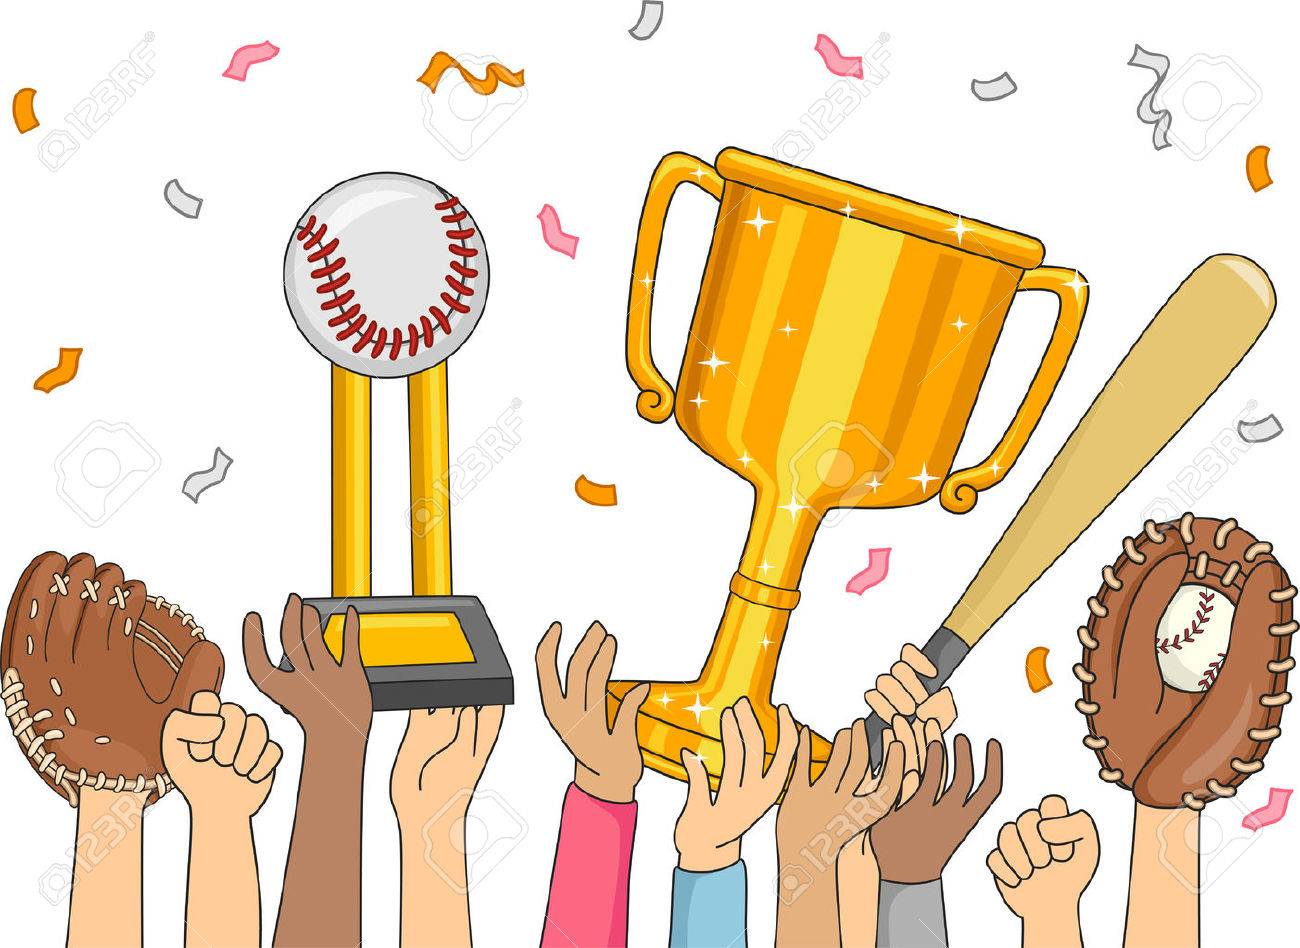 Illustration Featuring a Baseball Team Celebrating Their Victory.